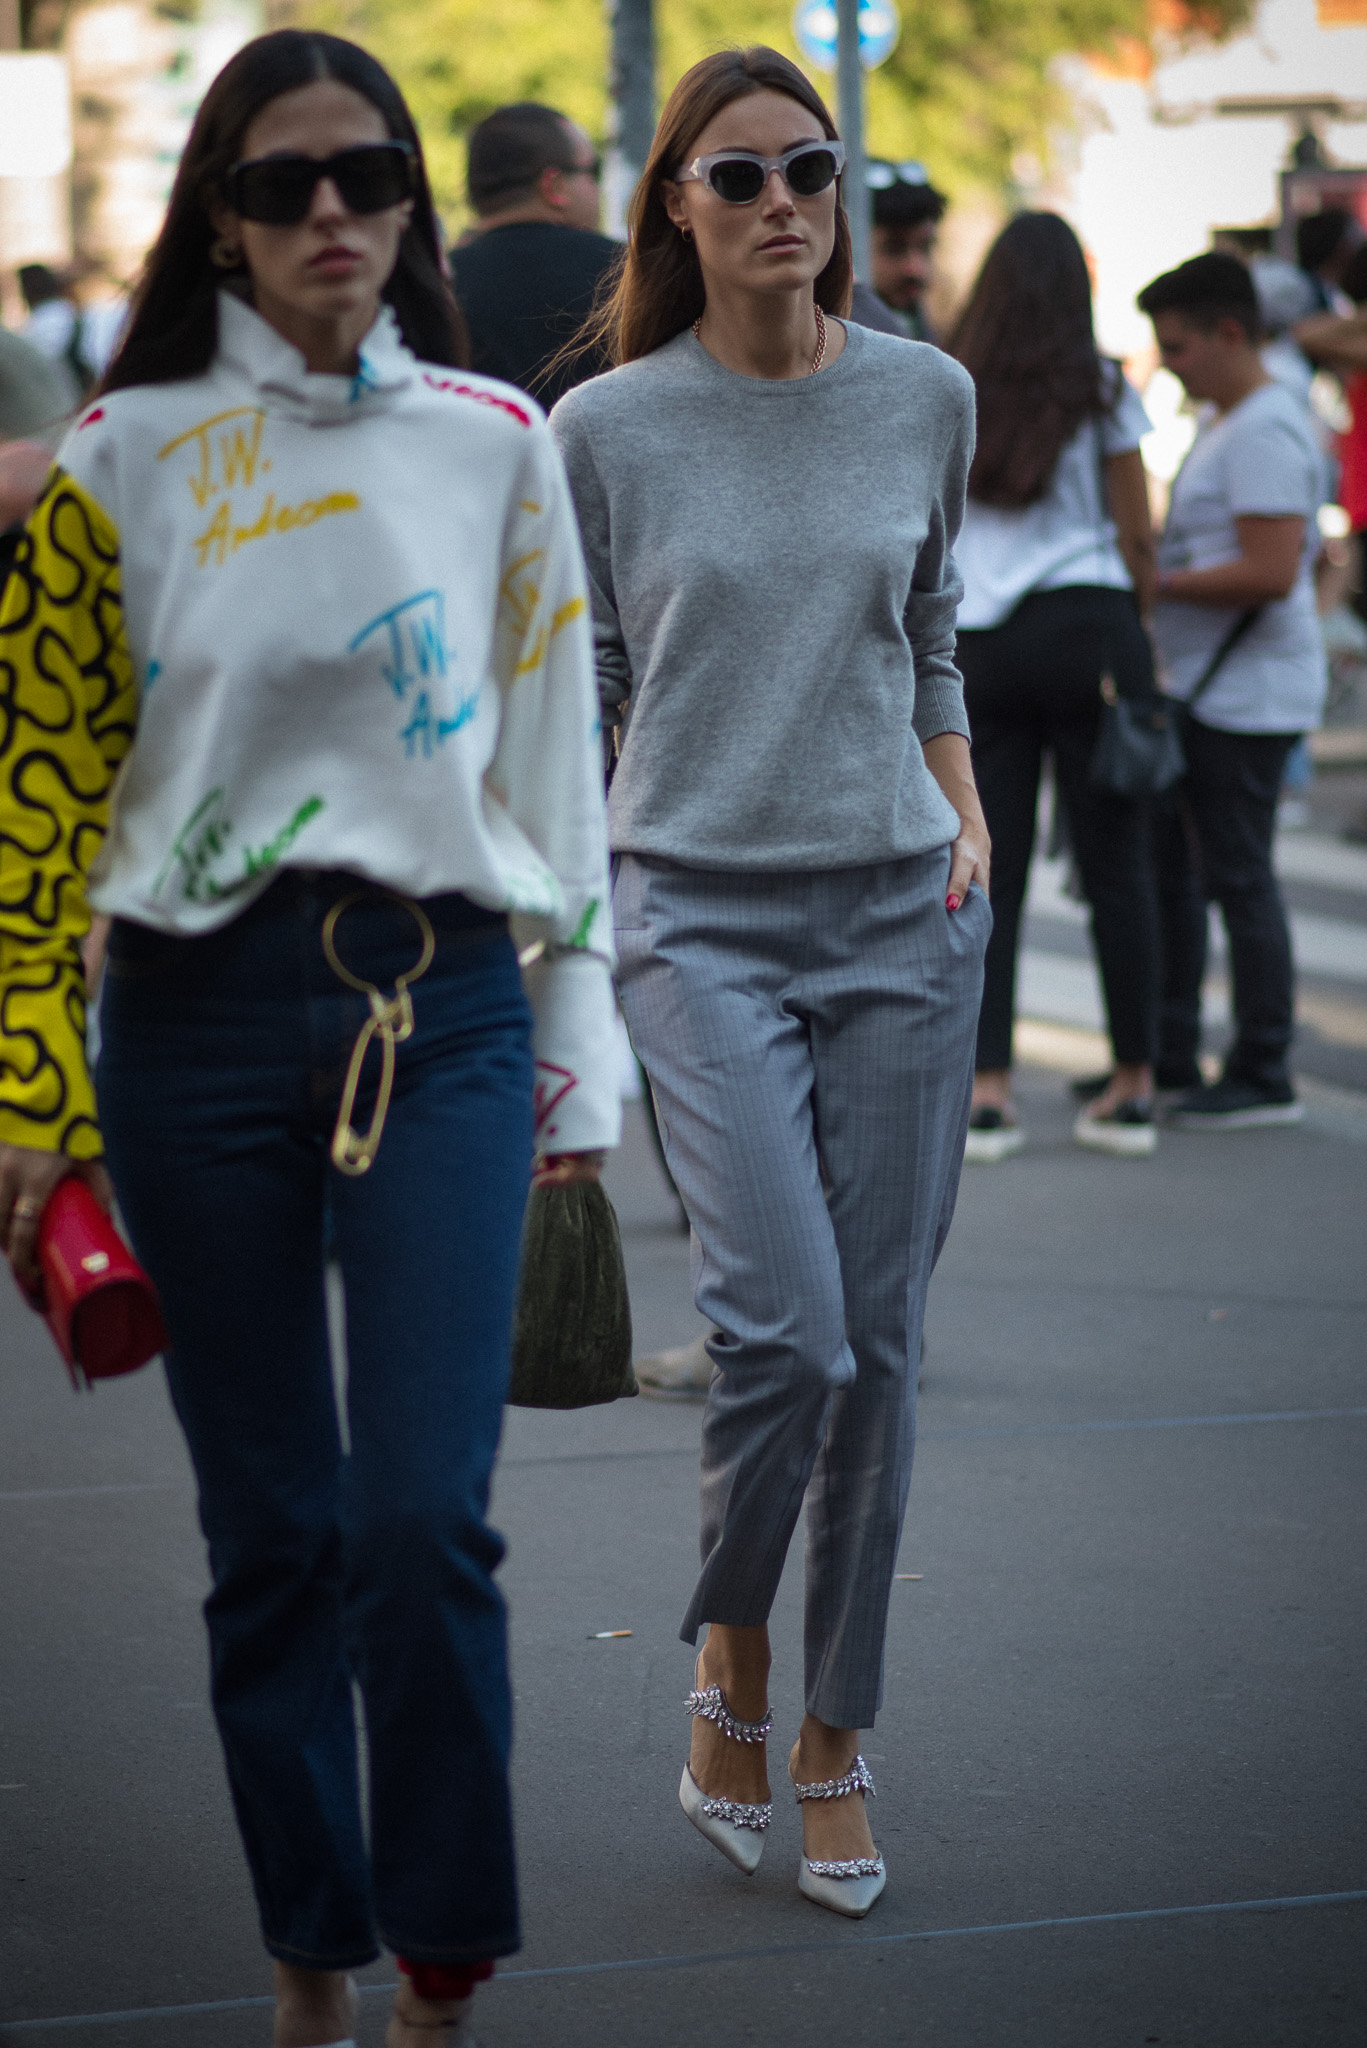 street-style_jil-sander_milan-fashion-week_sept-2016_www-annikasomething-com-5